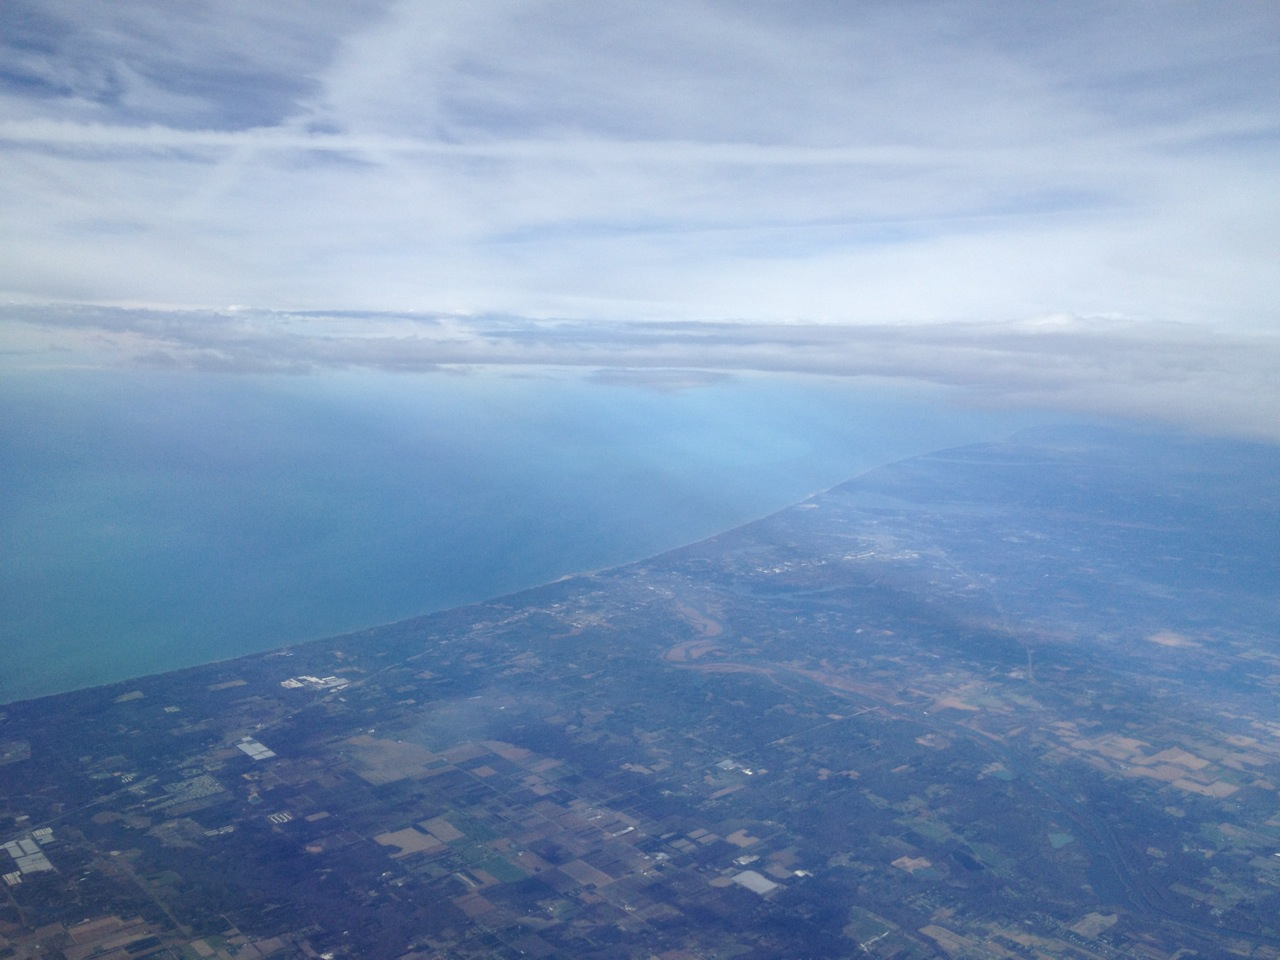 Finally, almost there: Lake Michigan